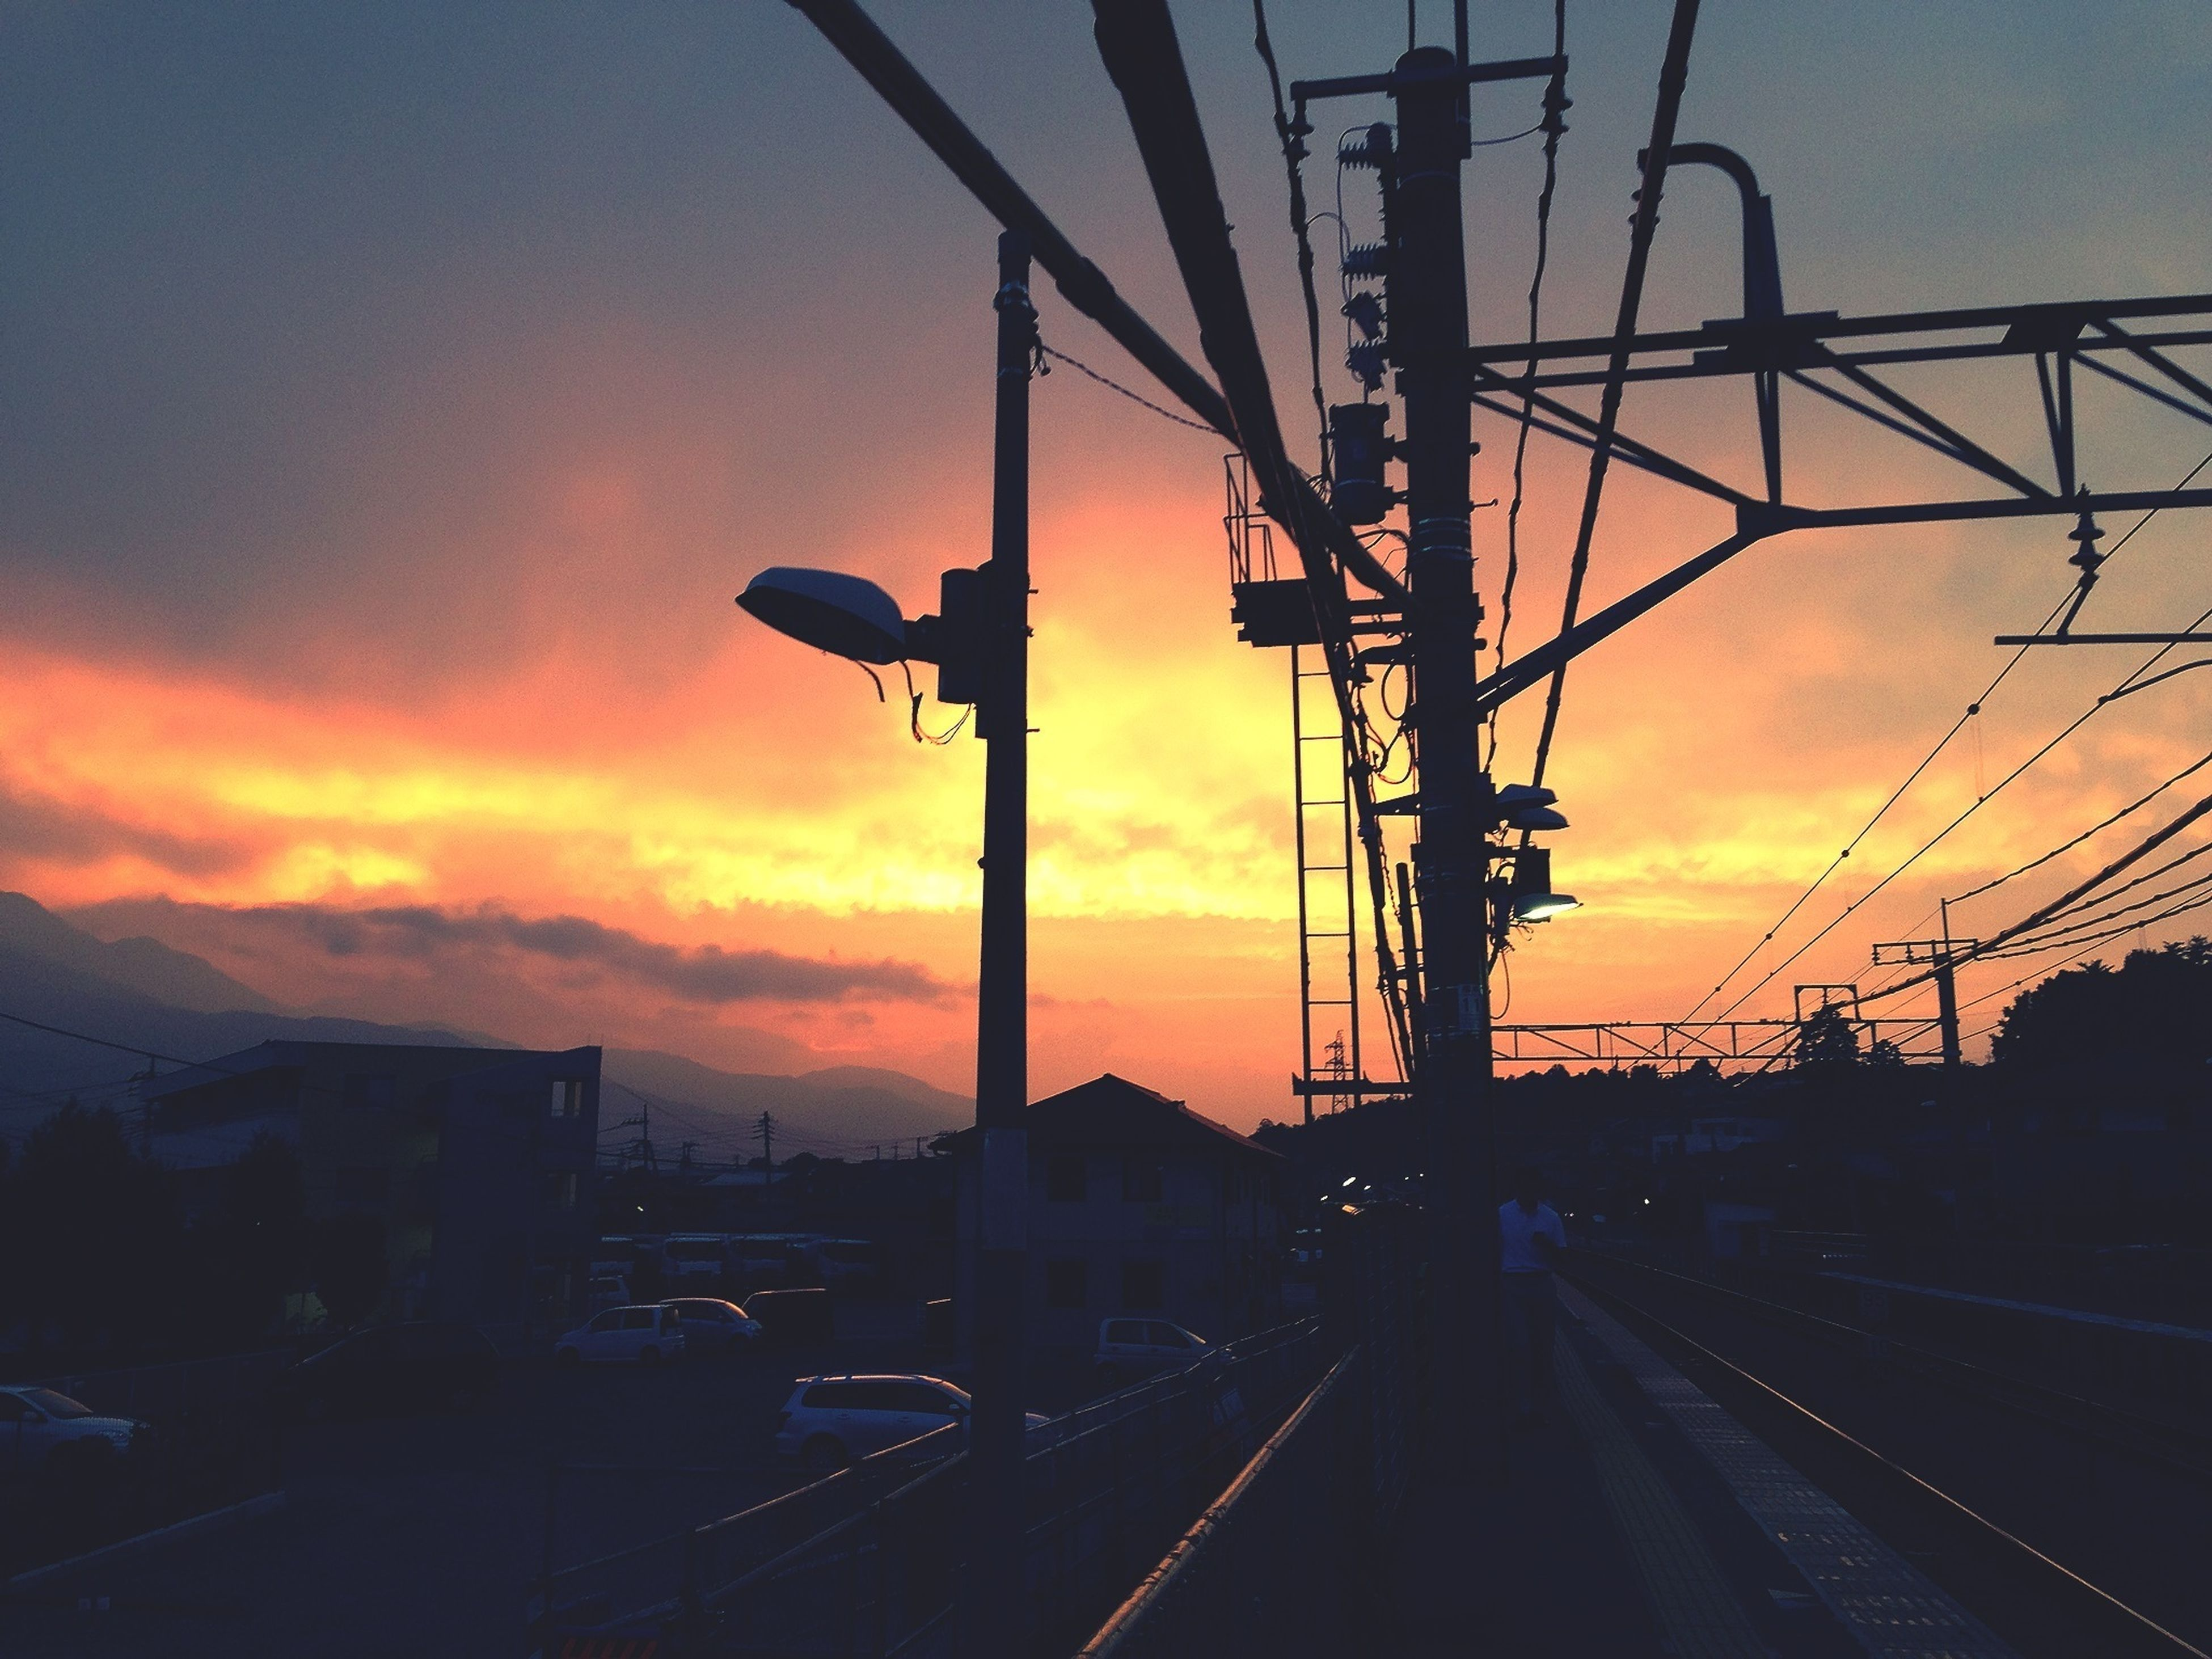 sunset, transportation, sky, orange color, silhouette, cloud - sky, car, railroad track, road, land vehicle, street light, dusk, electricity pylon, power line, mode of transport, connection, built structure, dramatic sky, architecture, street